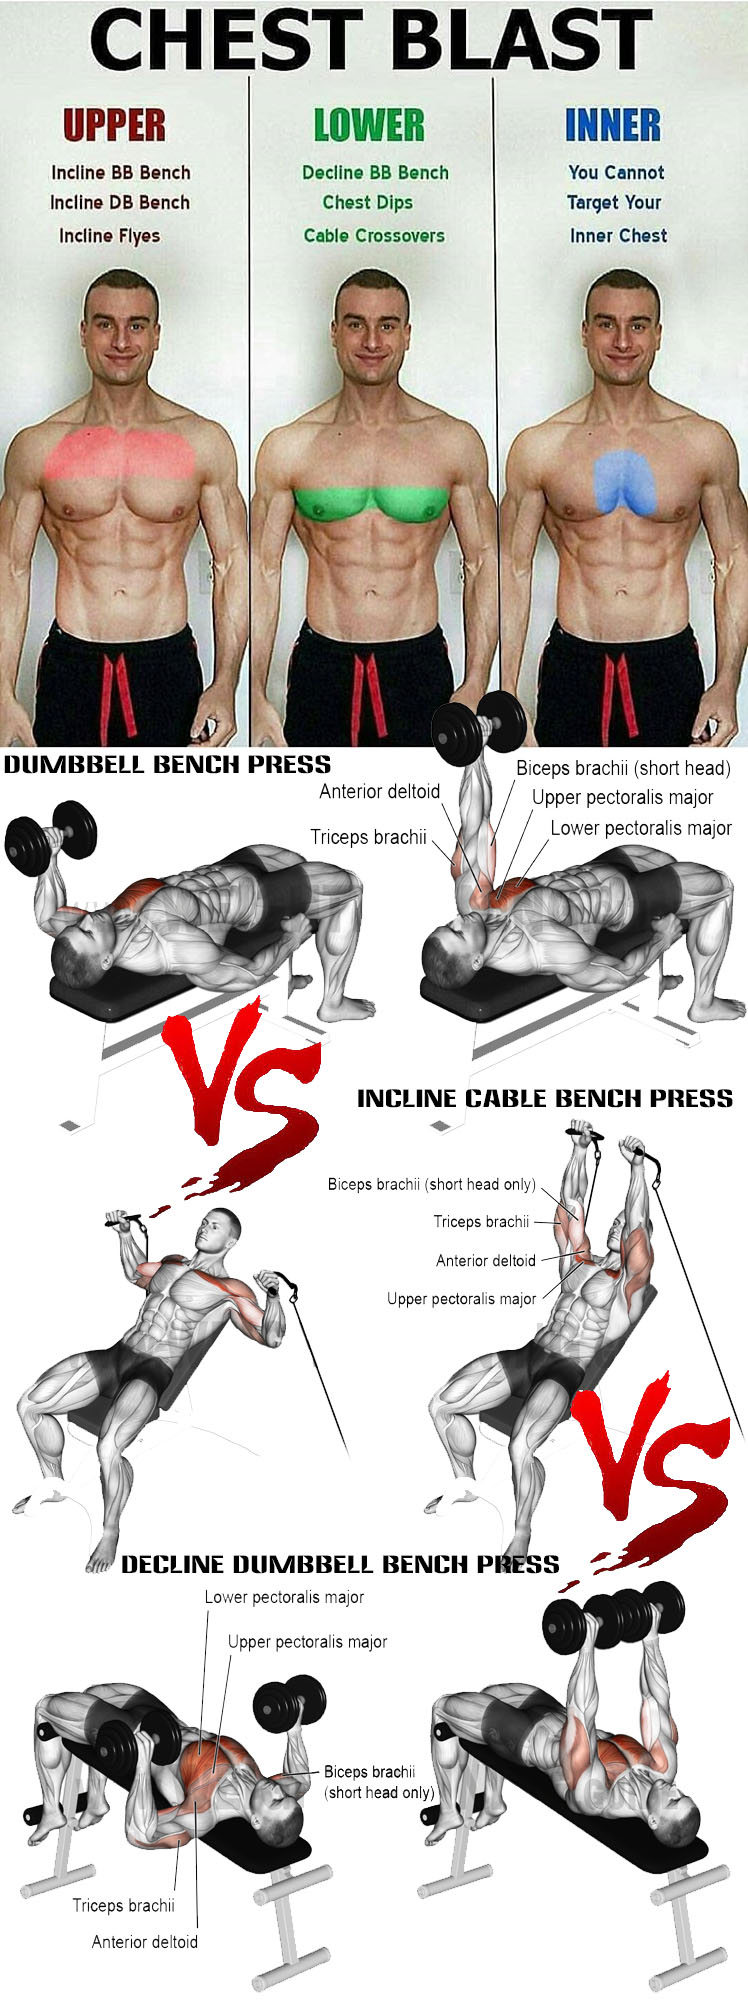 HOW TO CHEST BLAST GUIDE